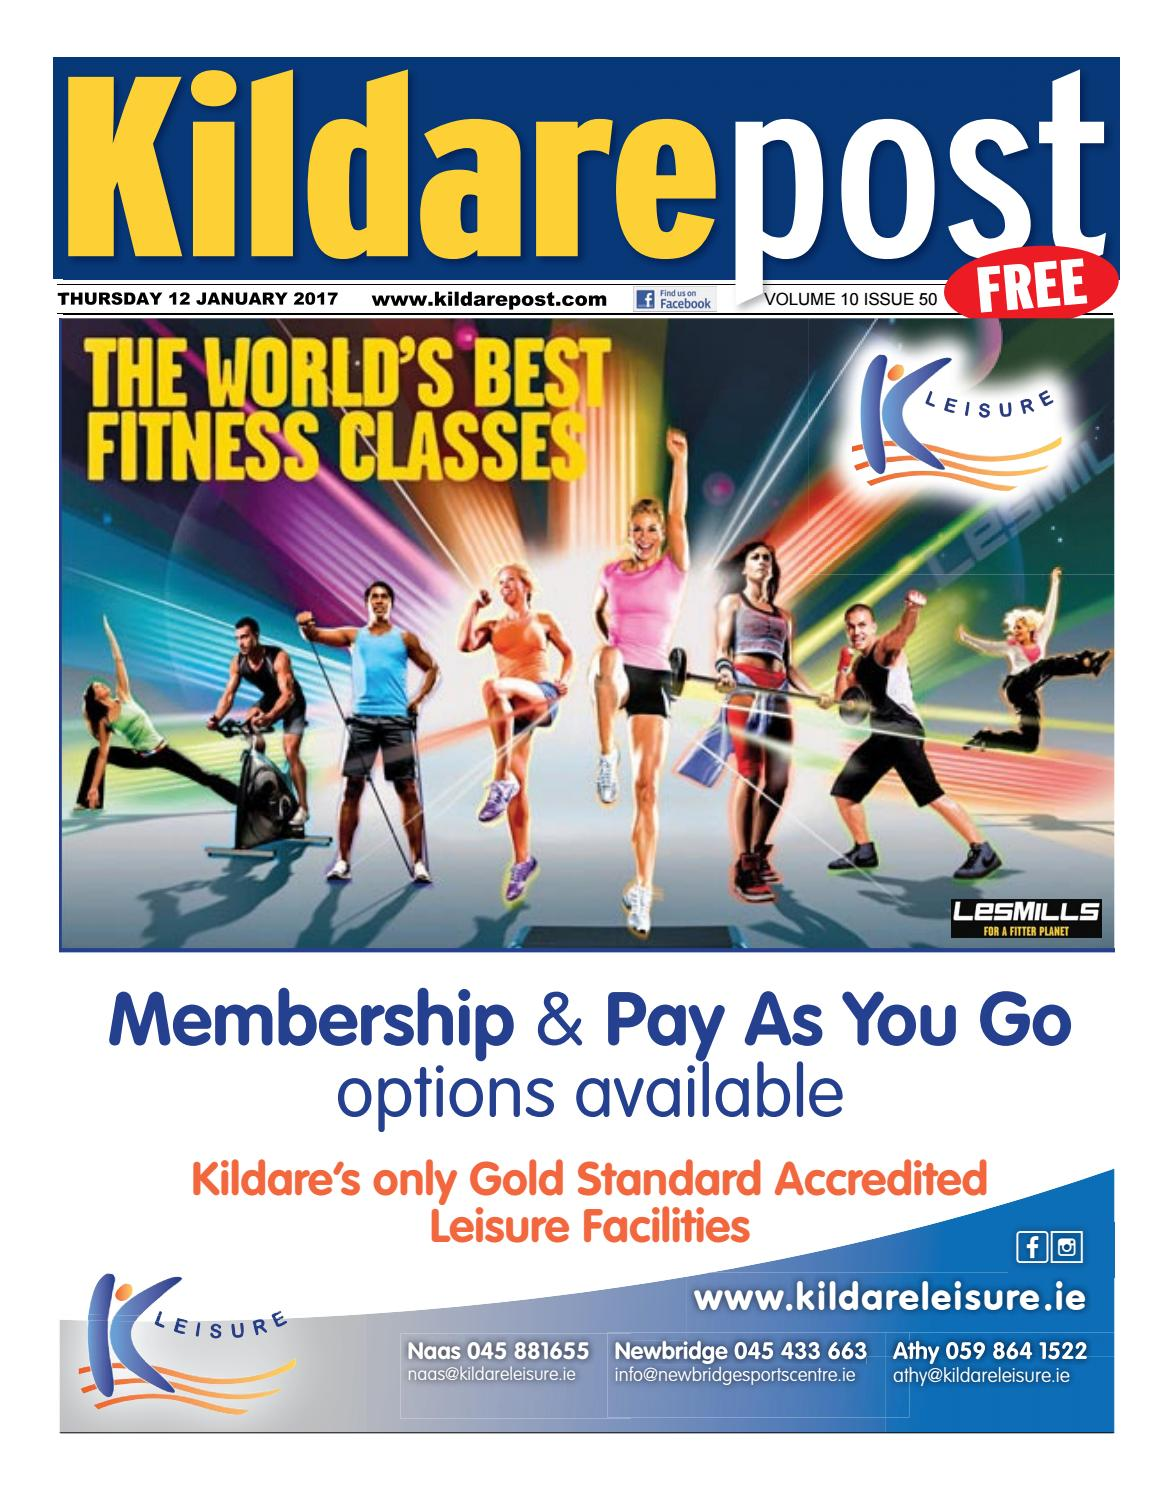 Kildare post 12 01 17 by River Media Newspapers - issuu fb22cd3945ca0